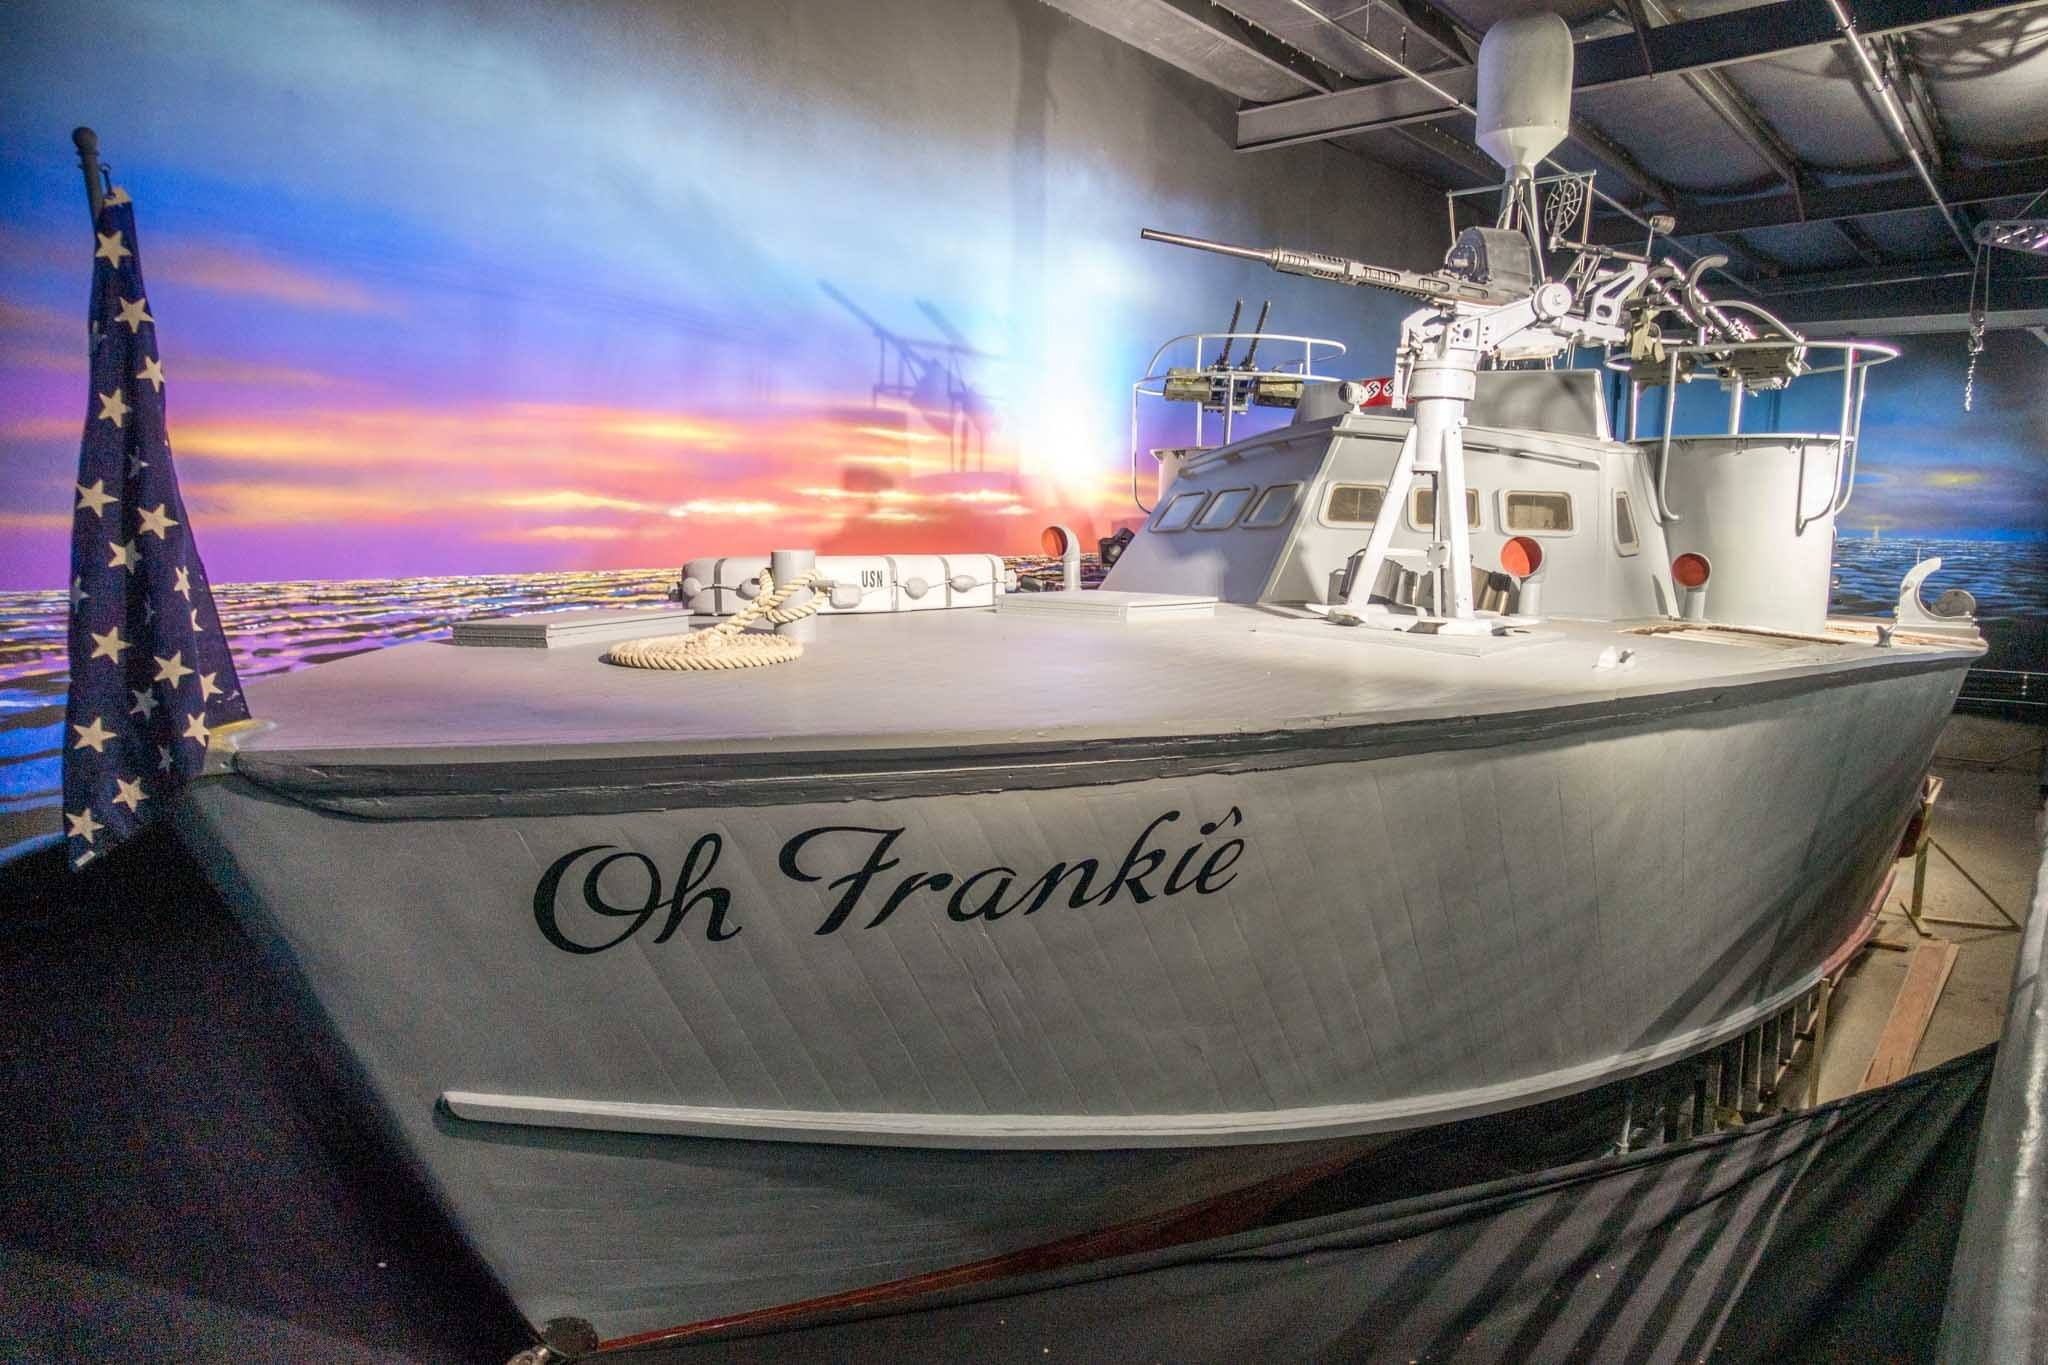 PT-309 boat named Oh Frankie on display at a museum